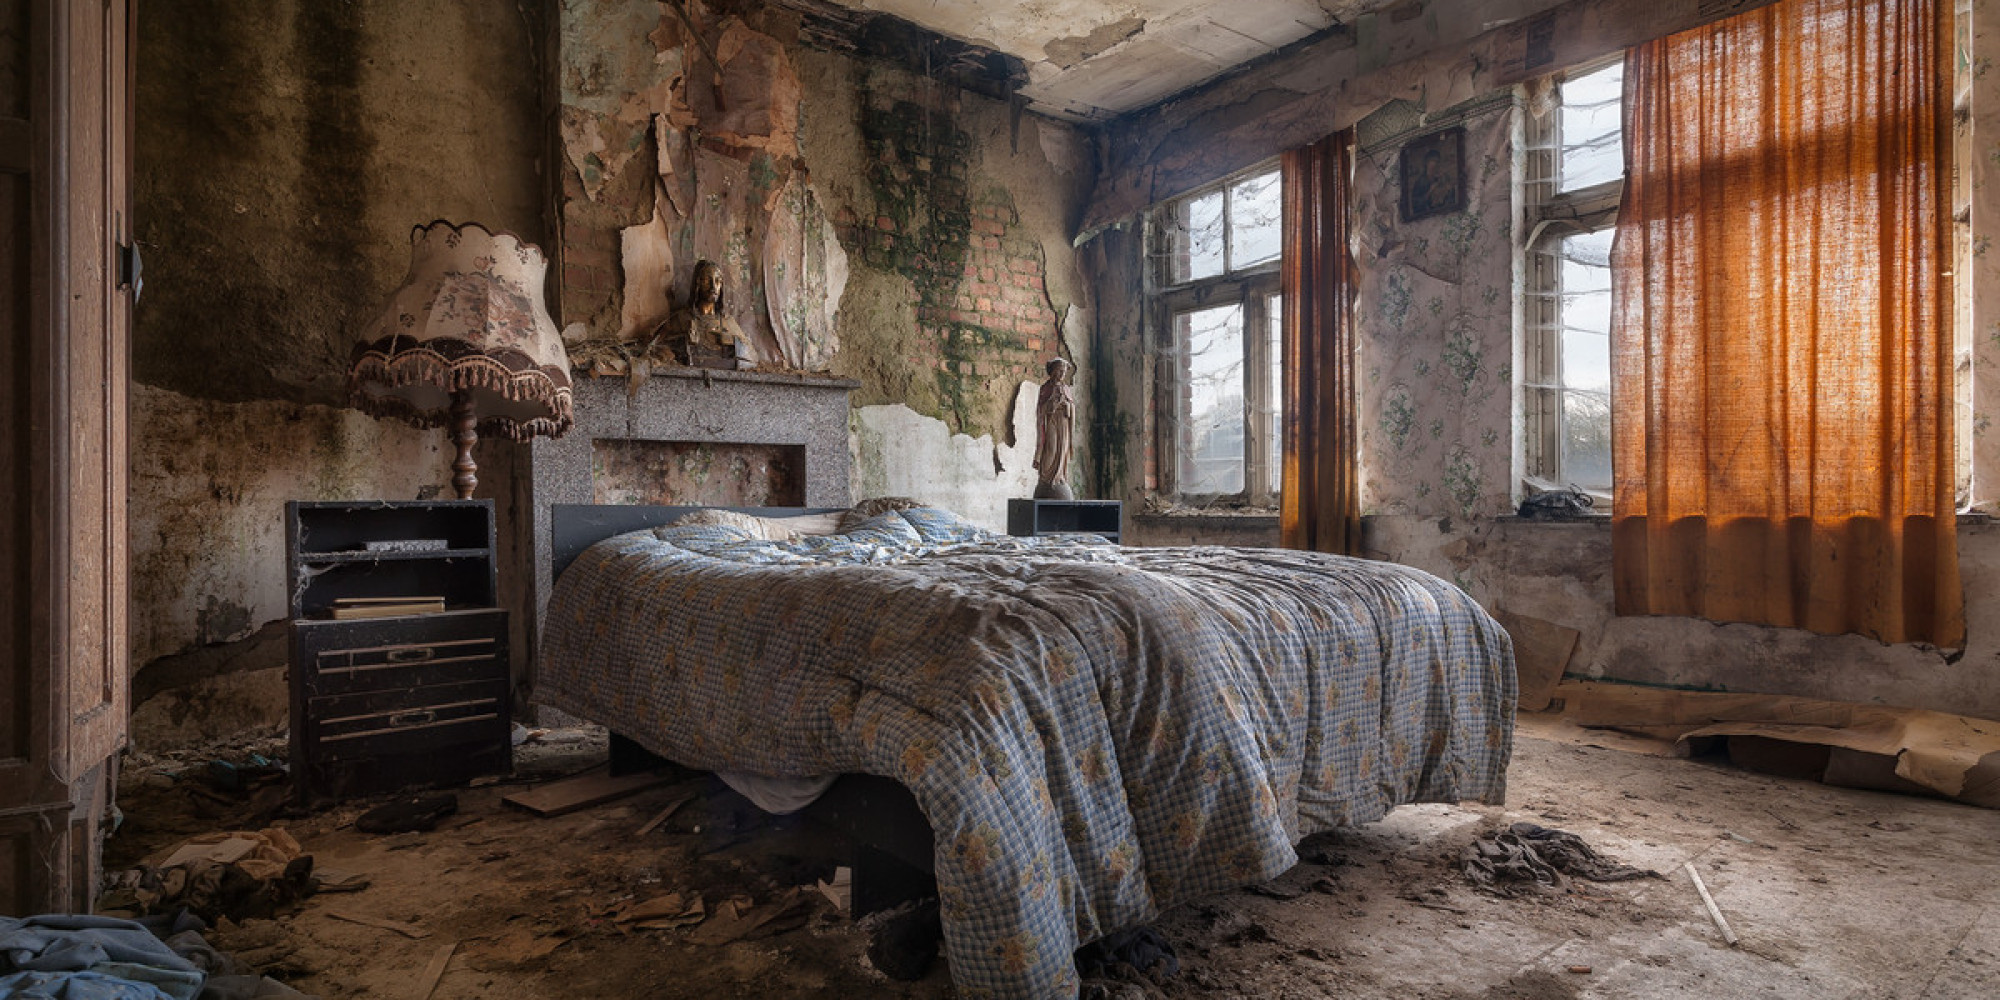 Stunning Abandoned Homes Are Surprisingly Full Of Life